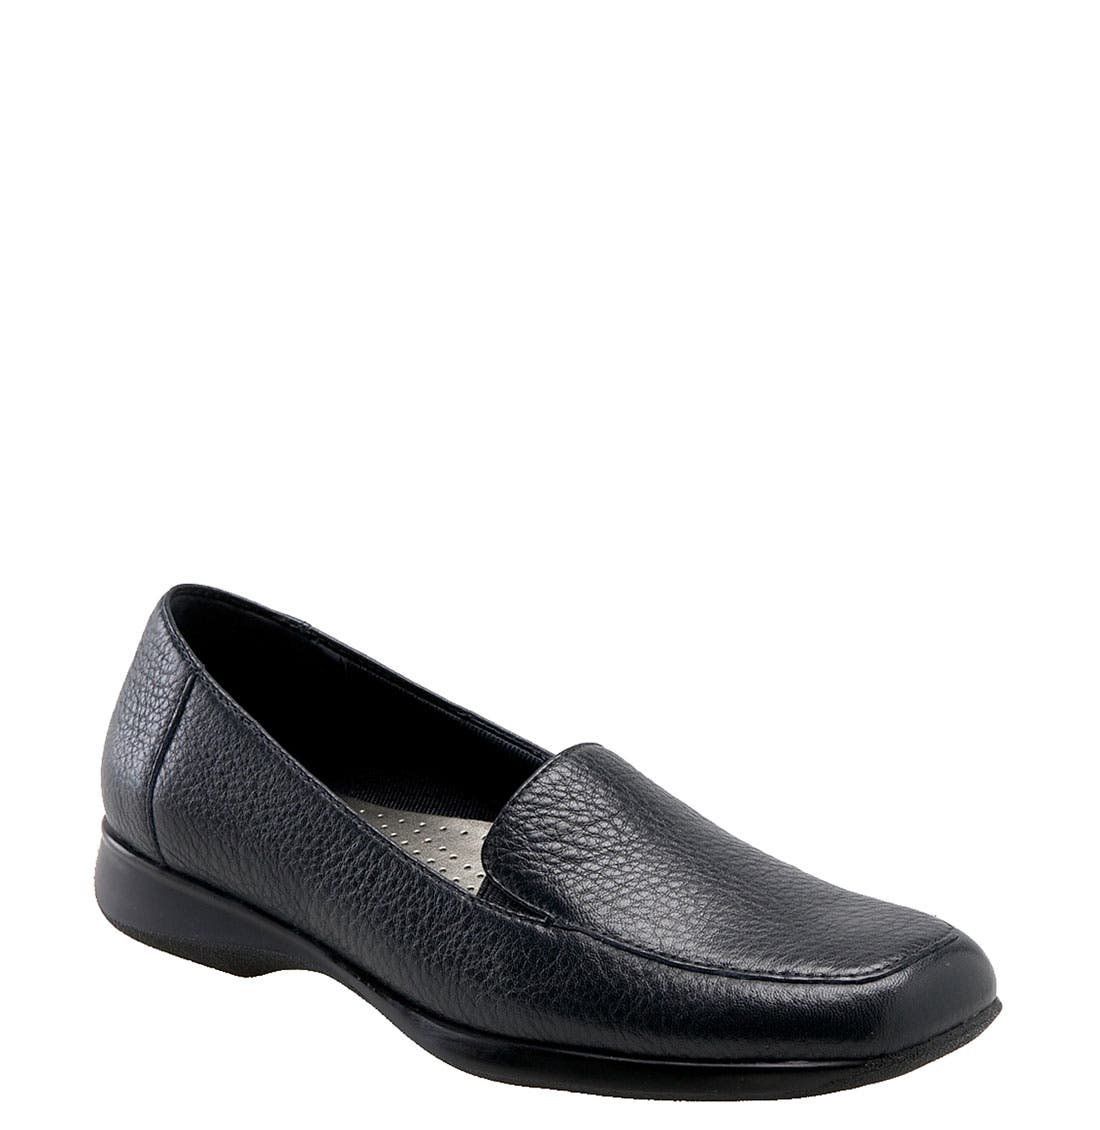 'Jenn' Loafer,                         Main,                         color, Navy Soft Tumbled Leather